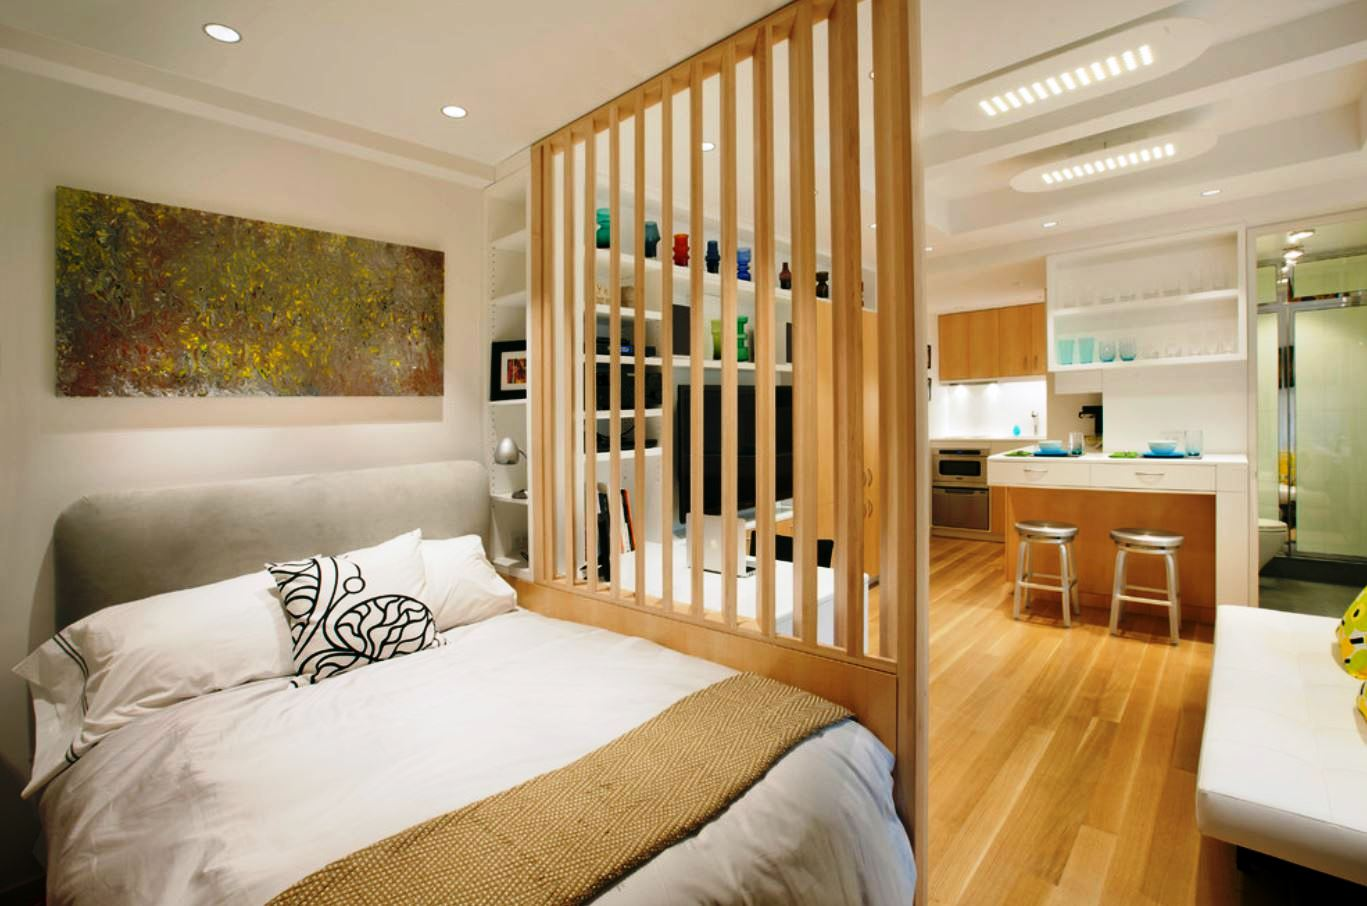 Studio Apartment Conversion How To Build A House